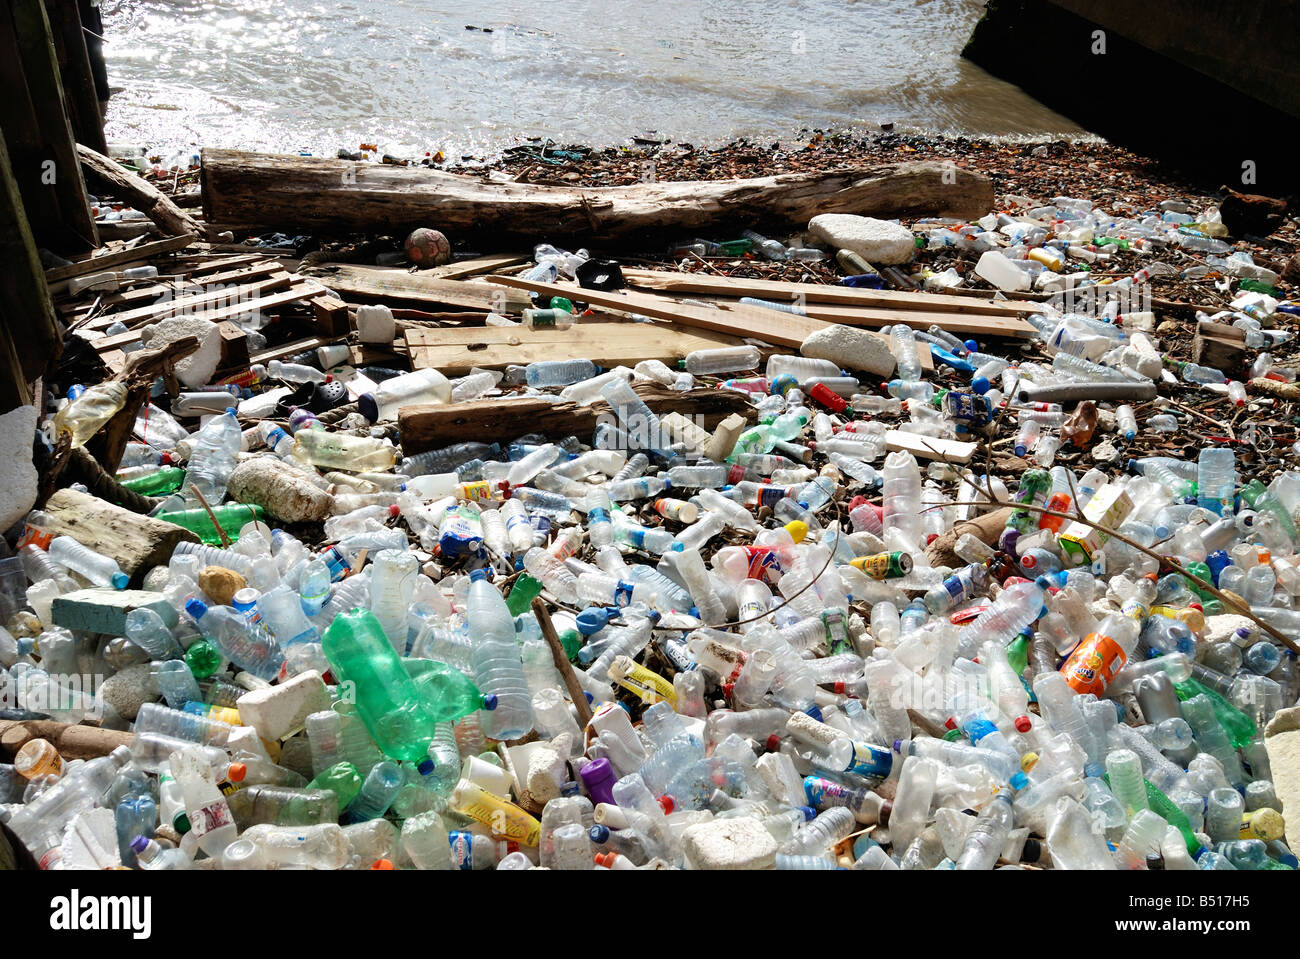 Pollution washed up on beach on the River Thames in the City of London - Stock Image